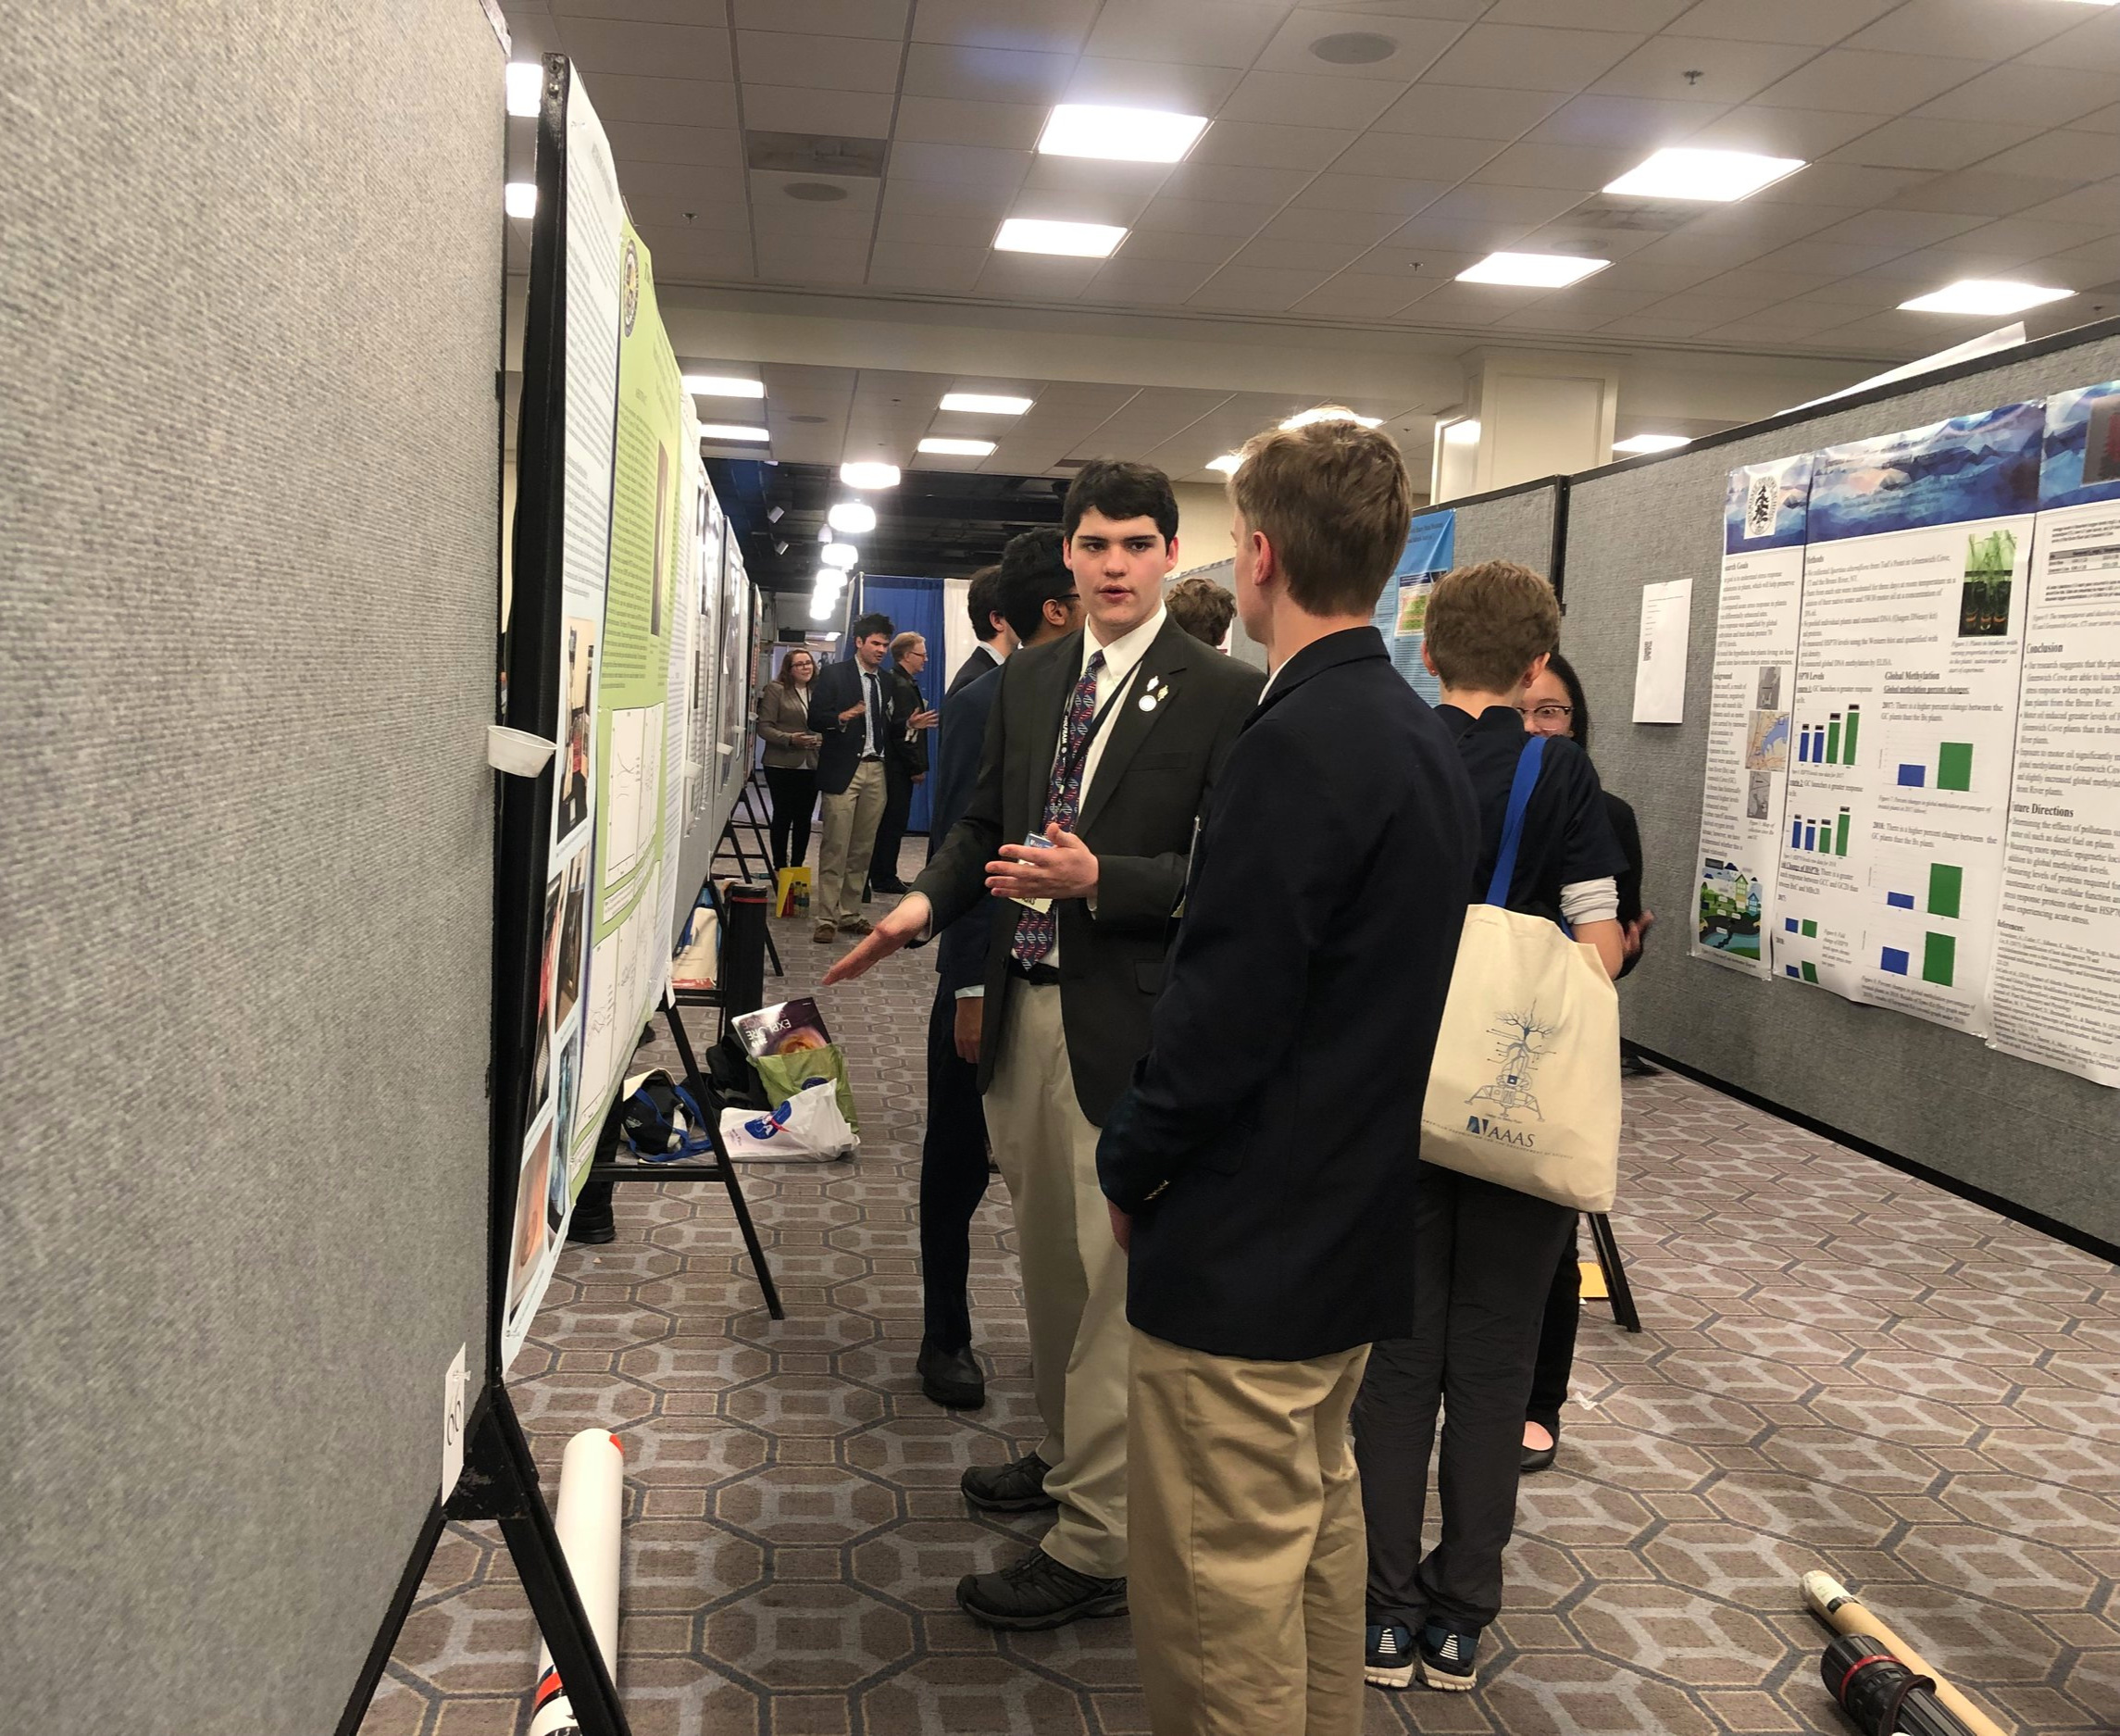 STUDENTS PRESENT THEIR POSTERS TO THE GENERAL PUBLIC & ATTENDEES OF THE AAAS MEETING